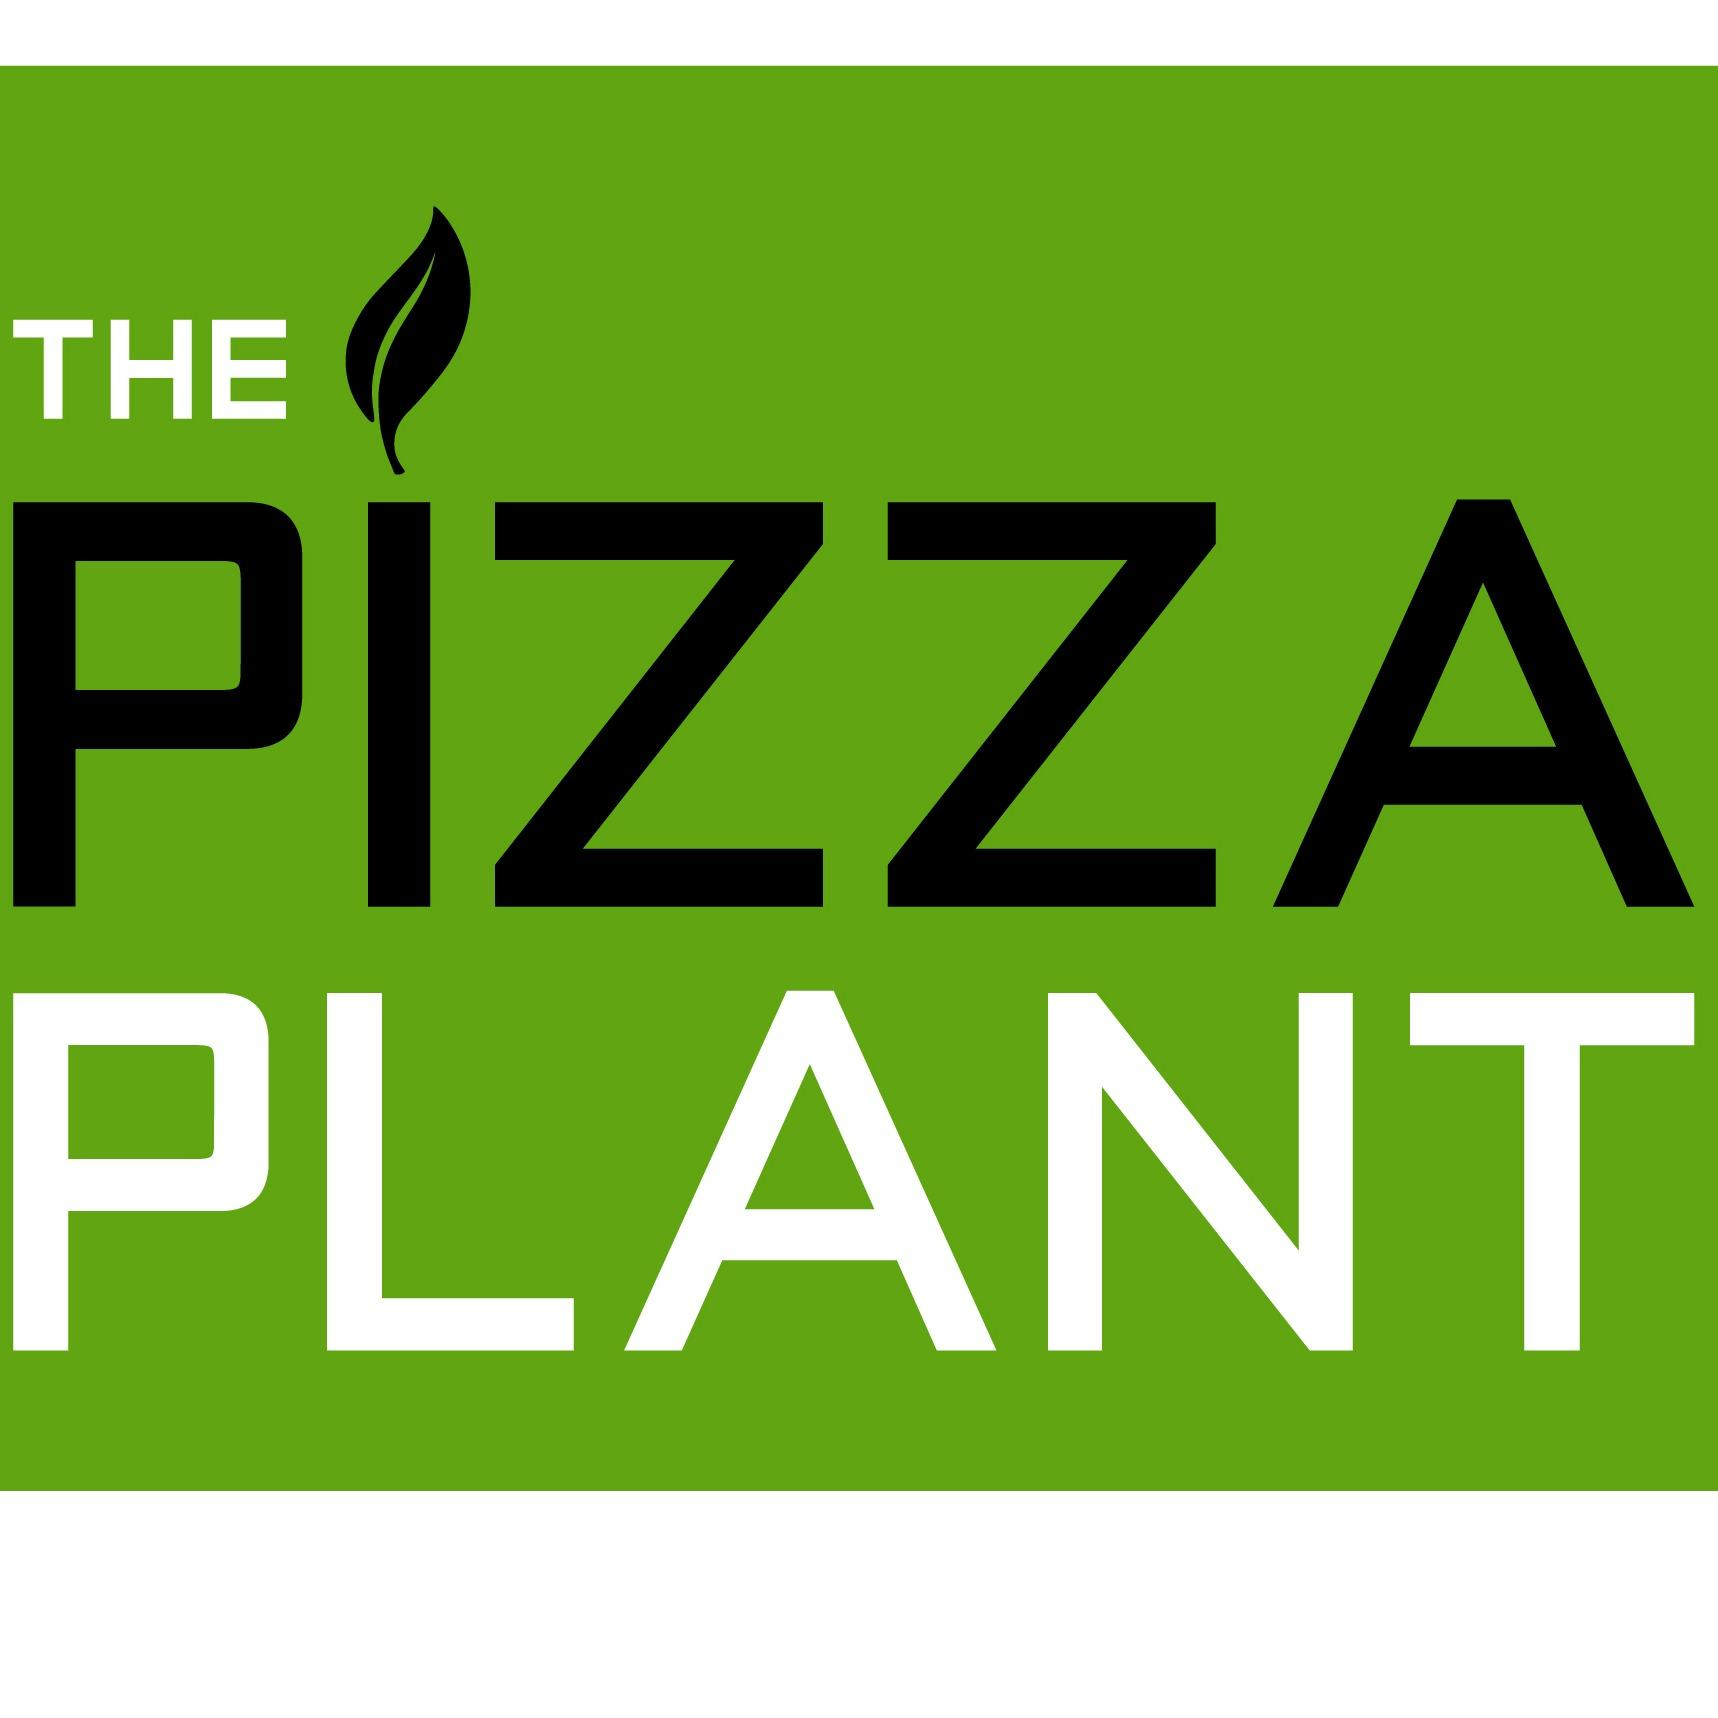 The Pizza Plant image 5